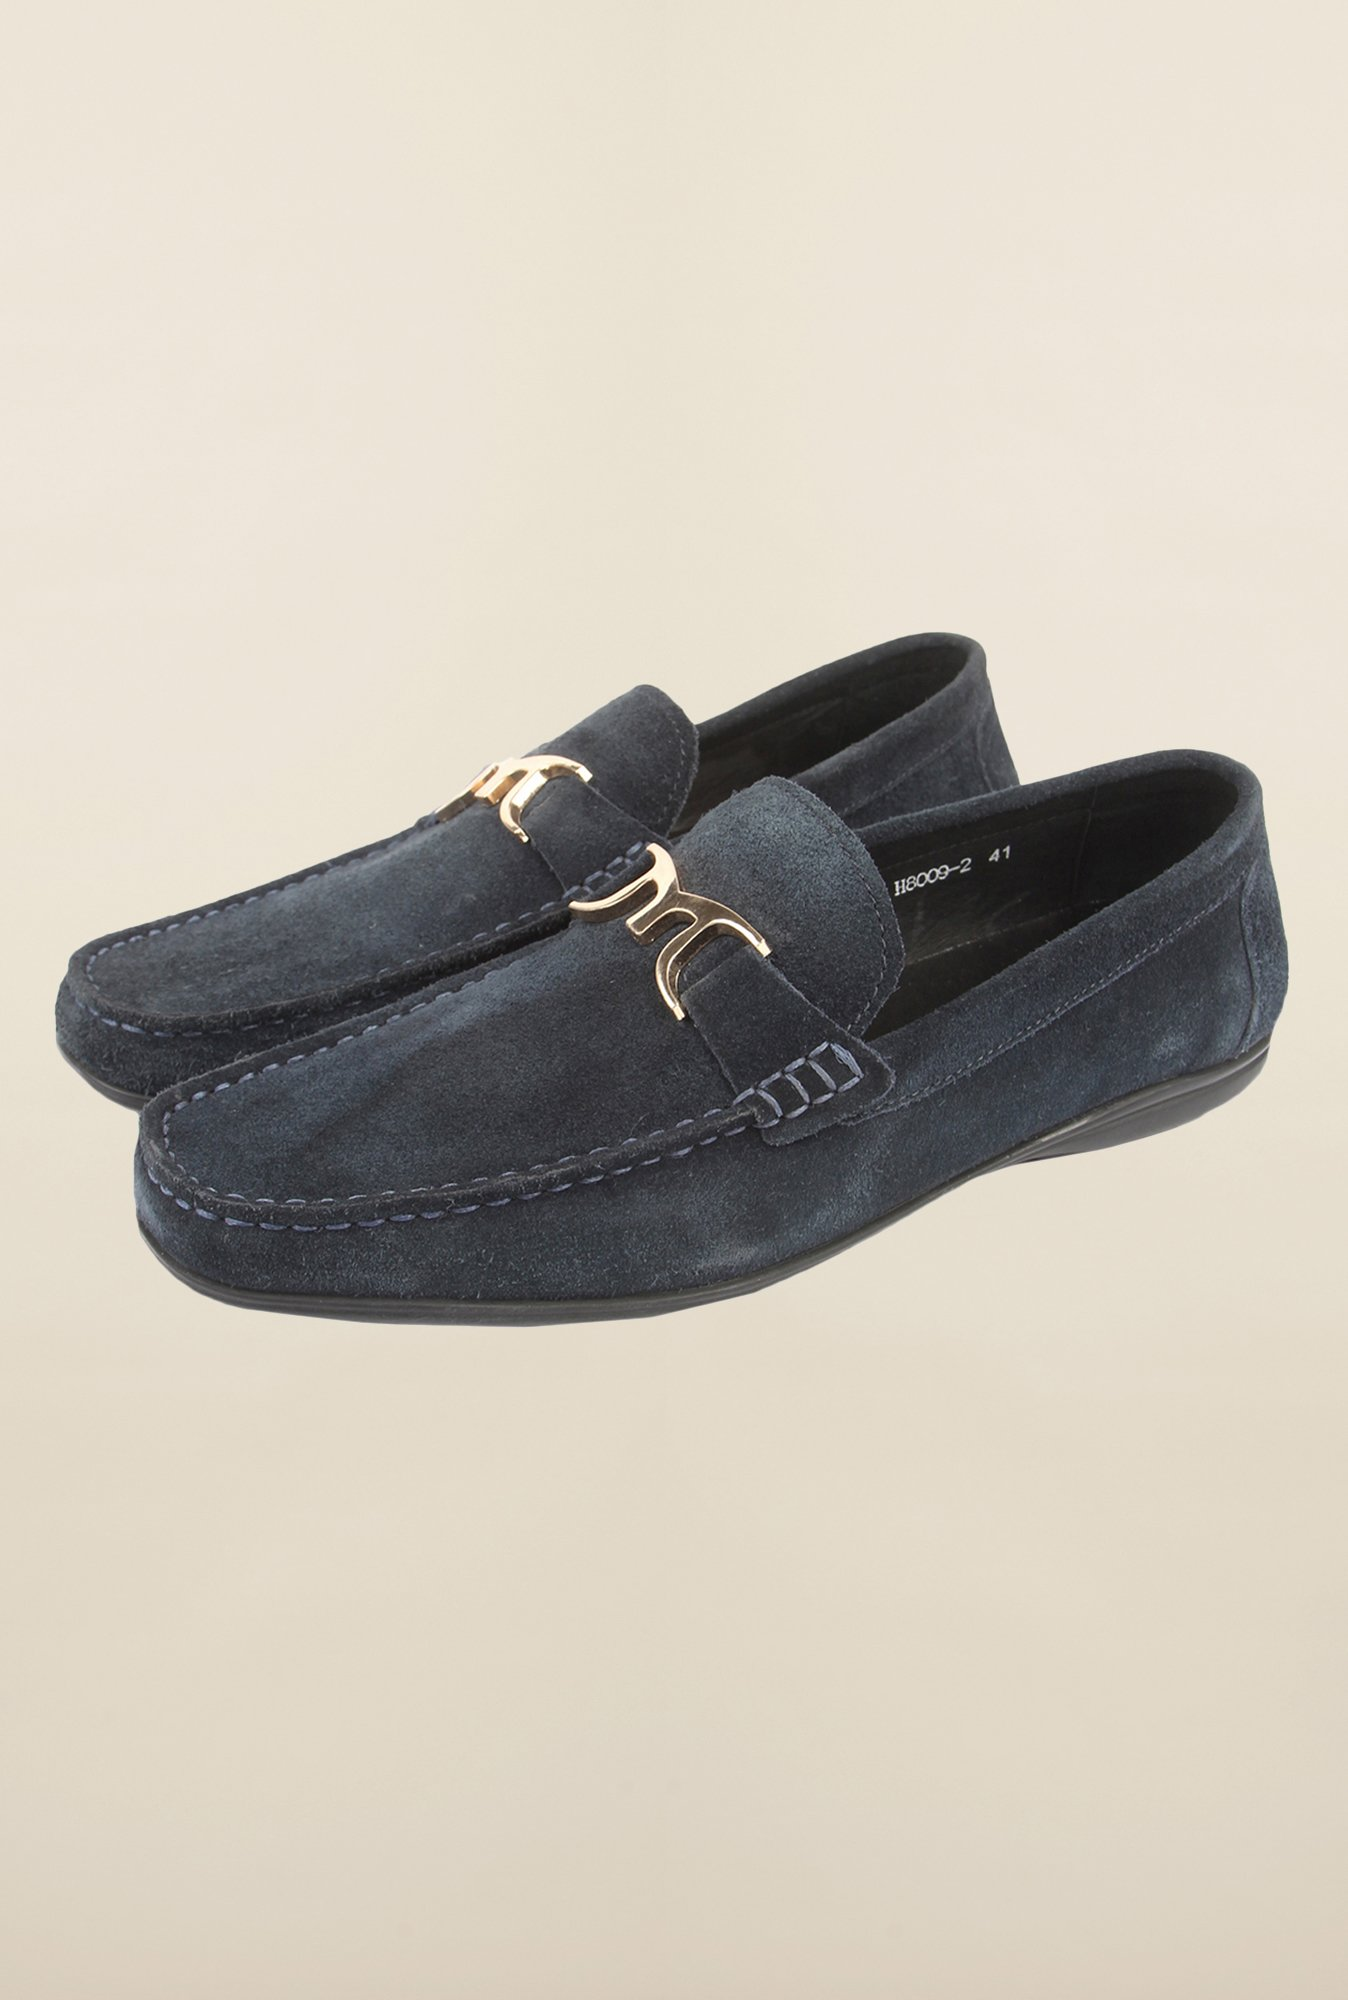 Cobblerz Navy Loafer Shoes